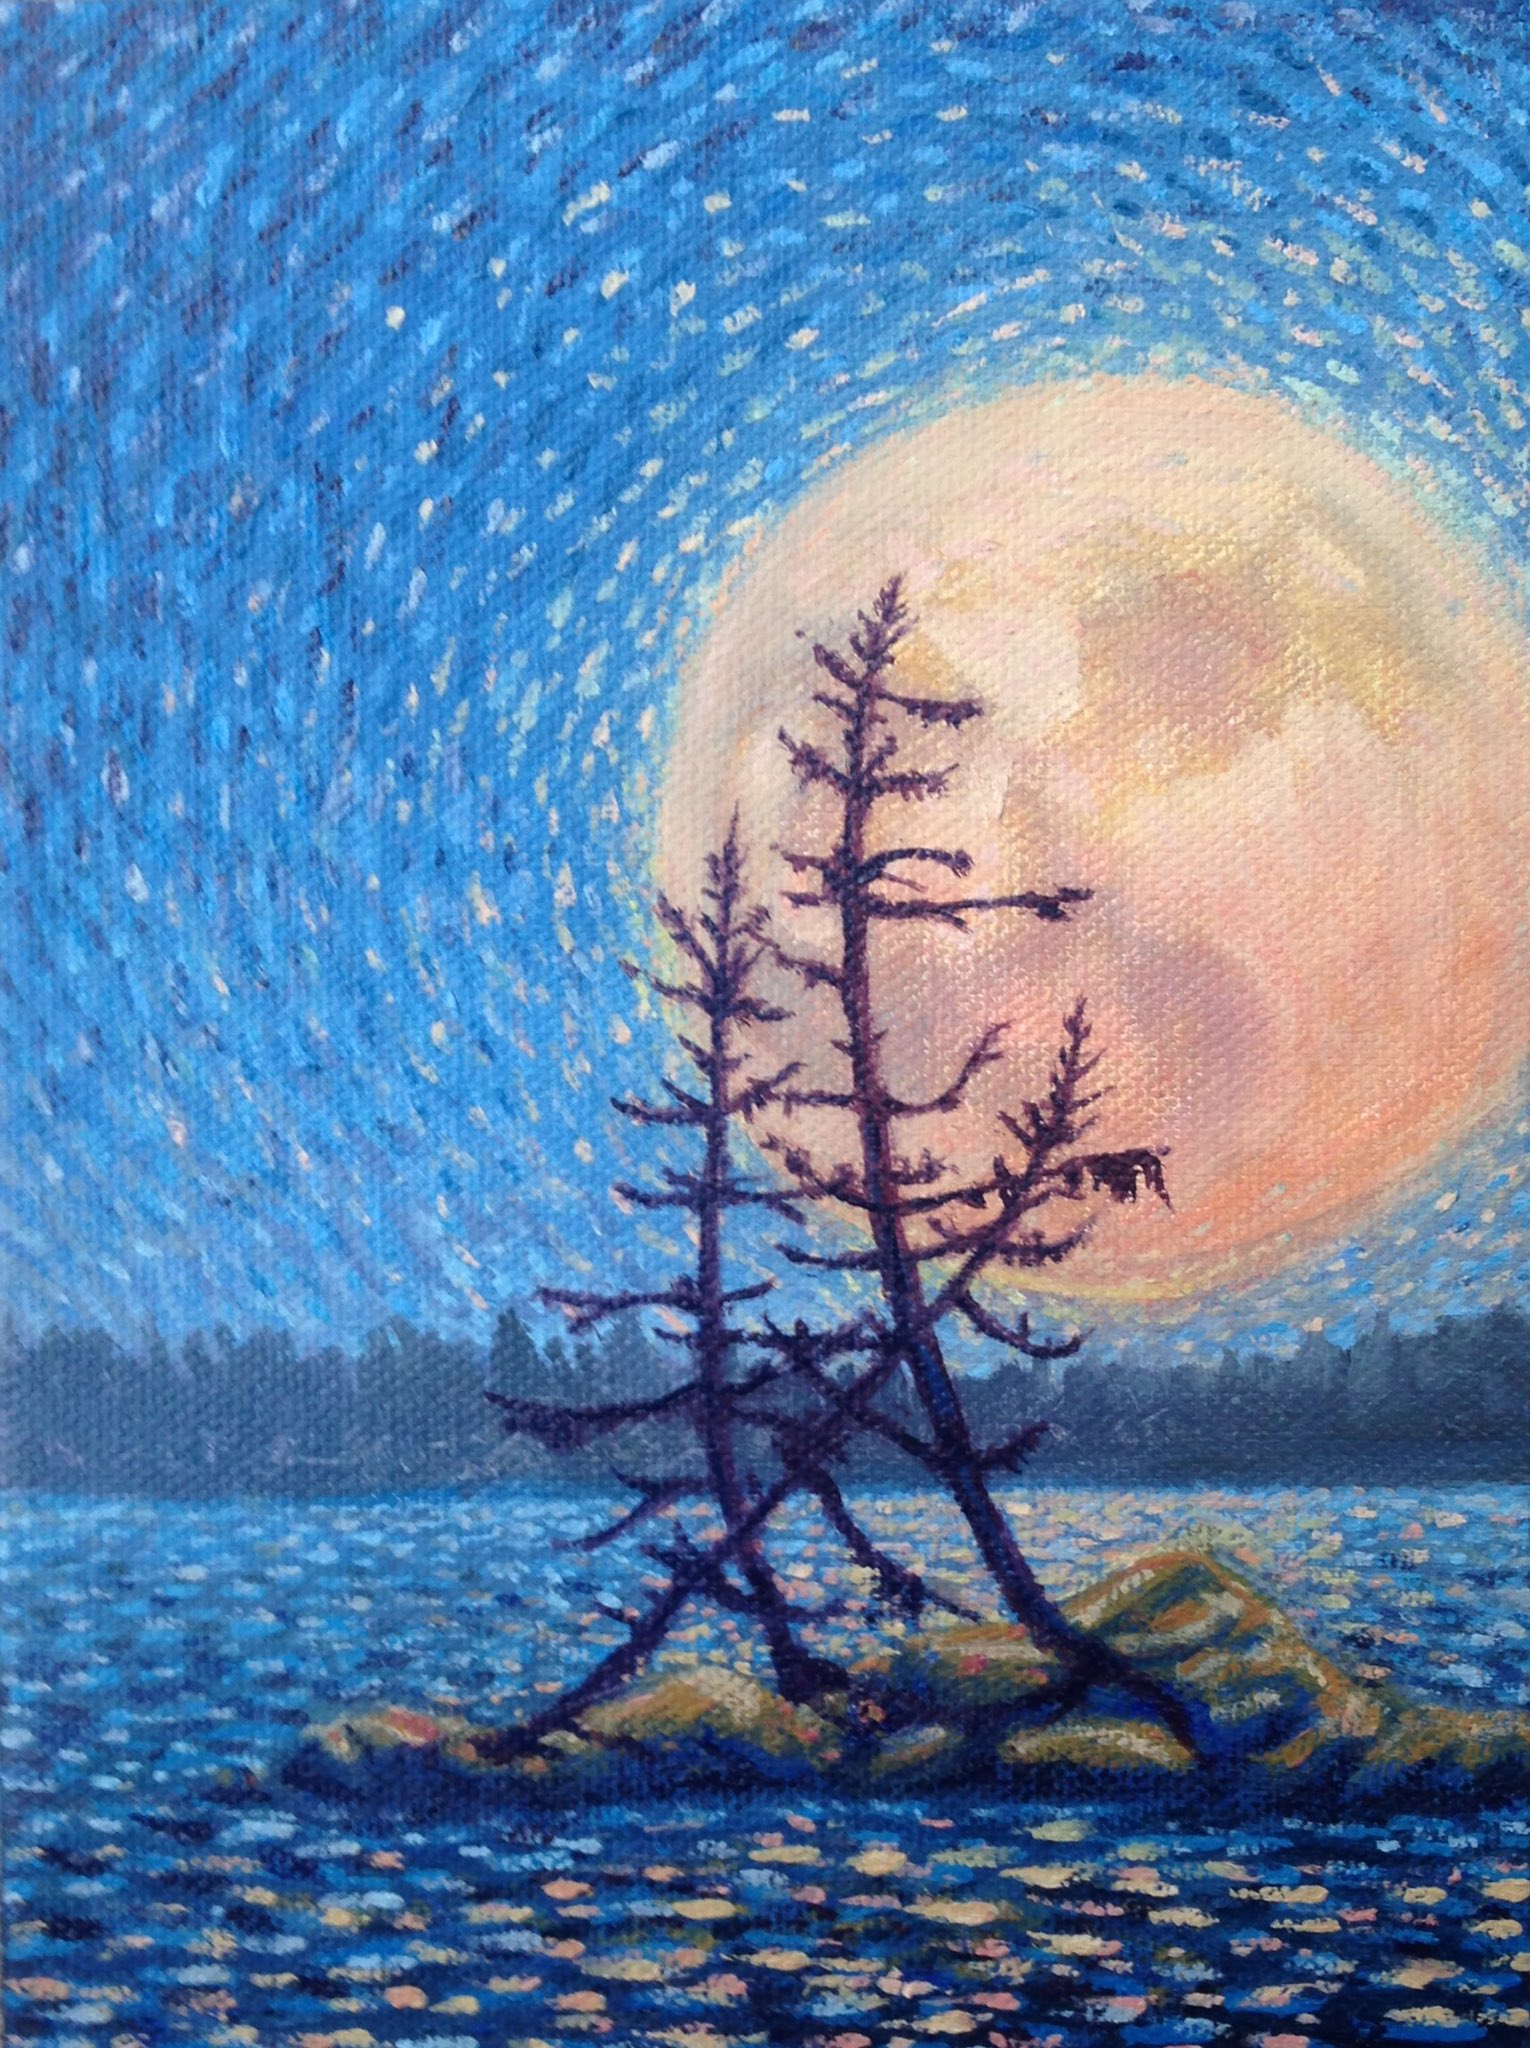 Reloaded twaddle – RT @johnkinsella52: #BLUEMOON on Saturday- Big Moon II, Algonquin 2018 Oil on ca...